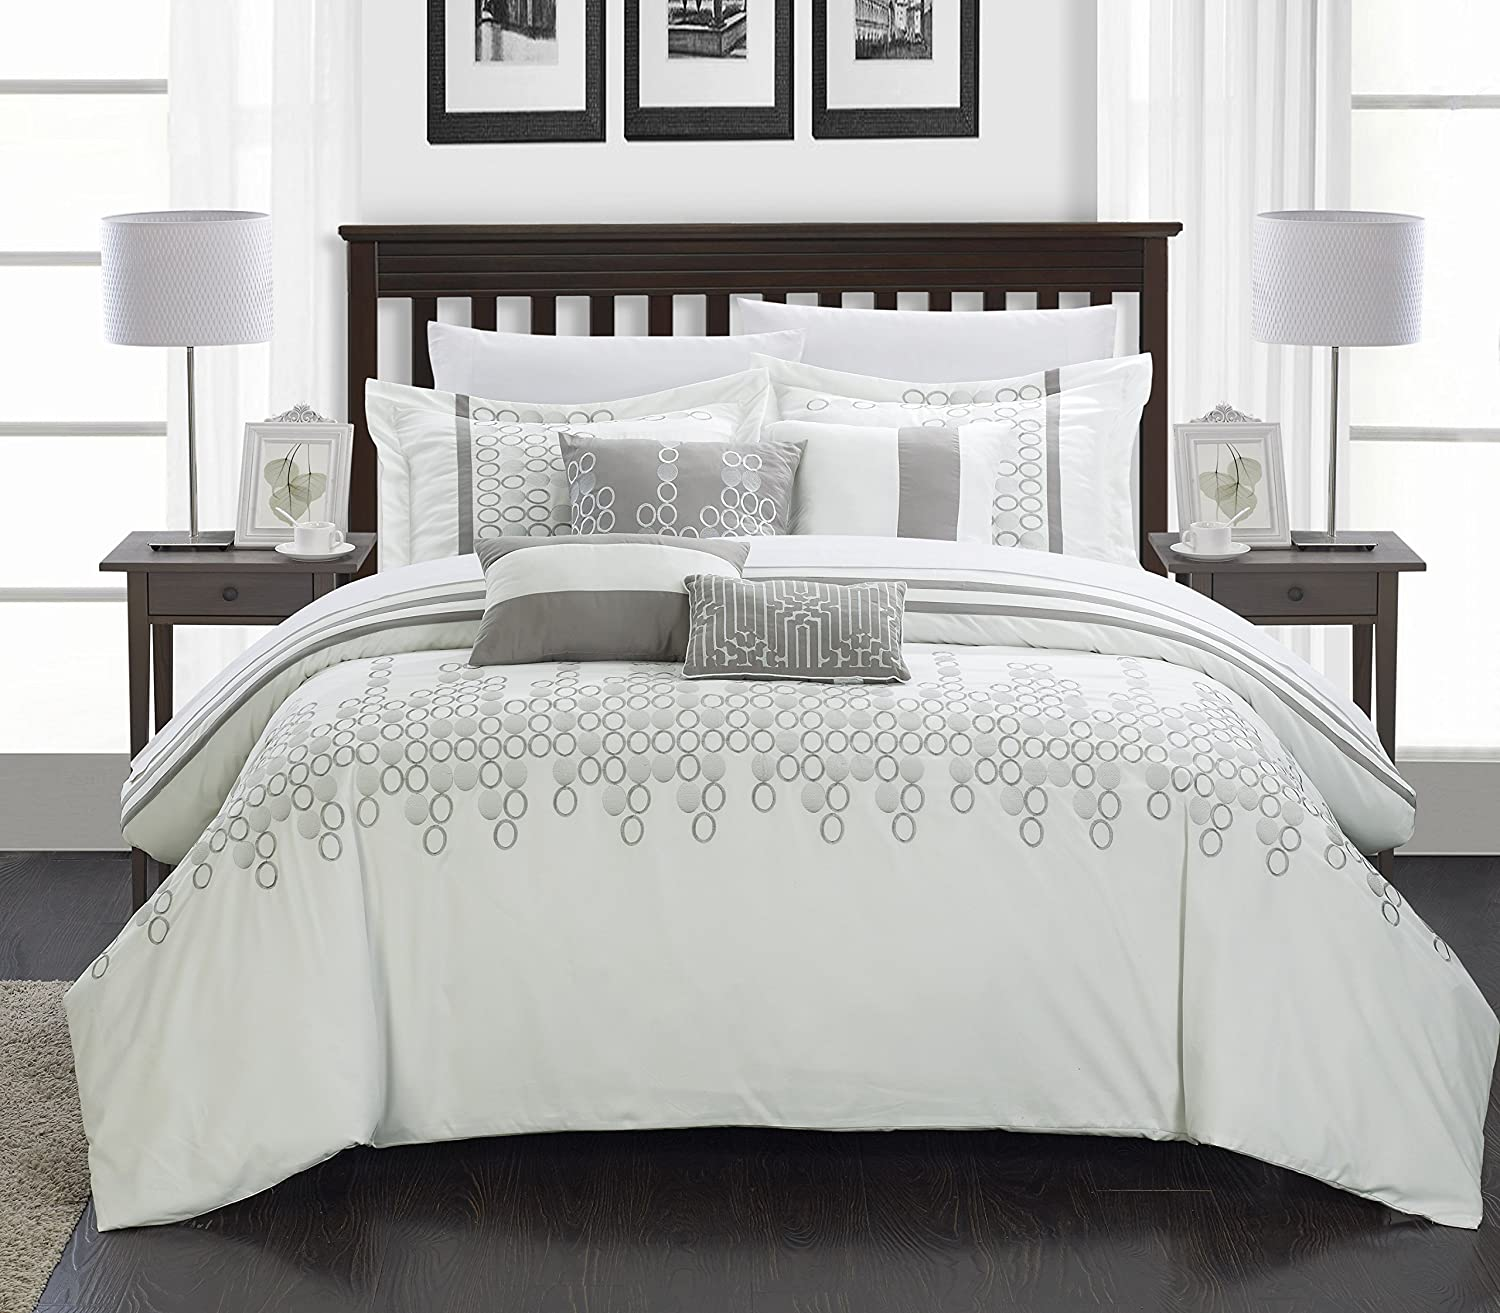 detail sets comforters oversized bedroom class cream set touch queen of clearance comforter